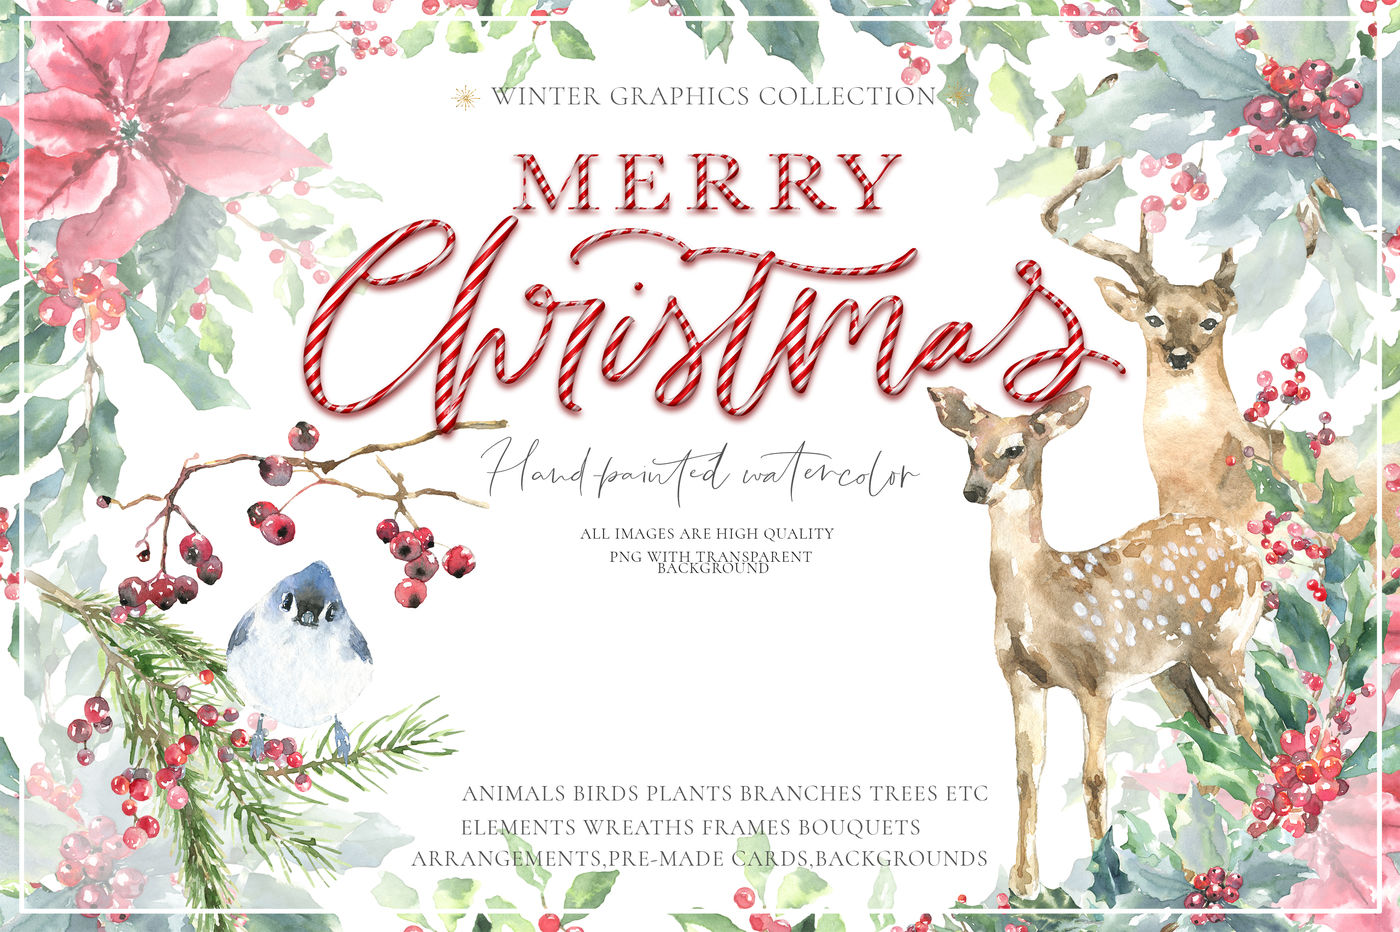 Merry Christmas Watercolor Graphics clipart By Catherine.